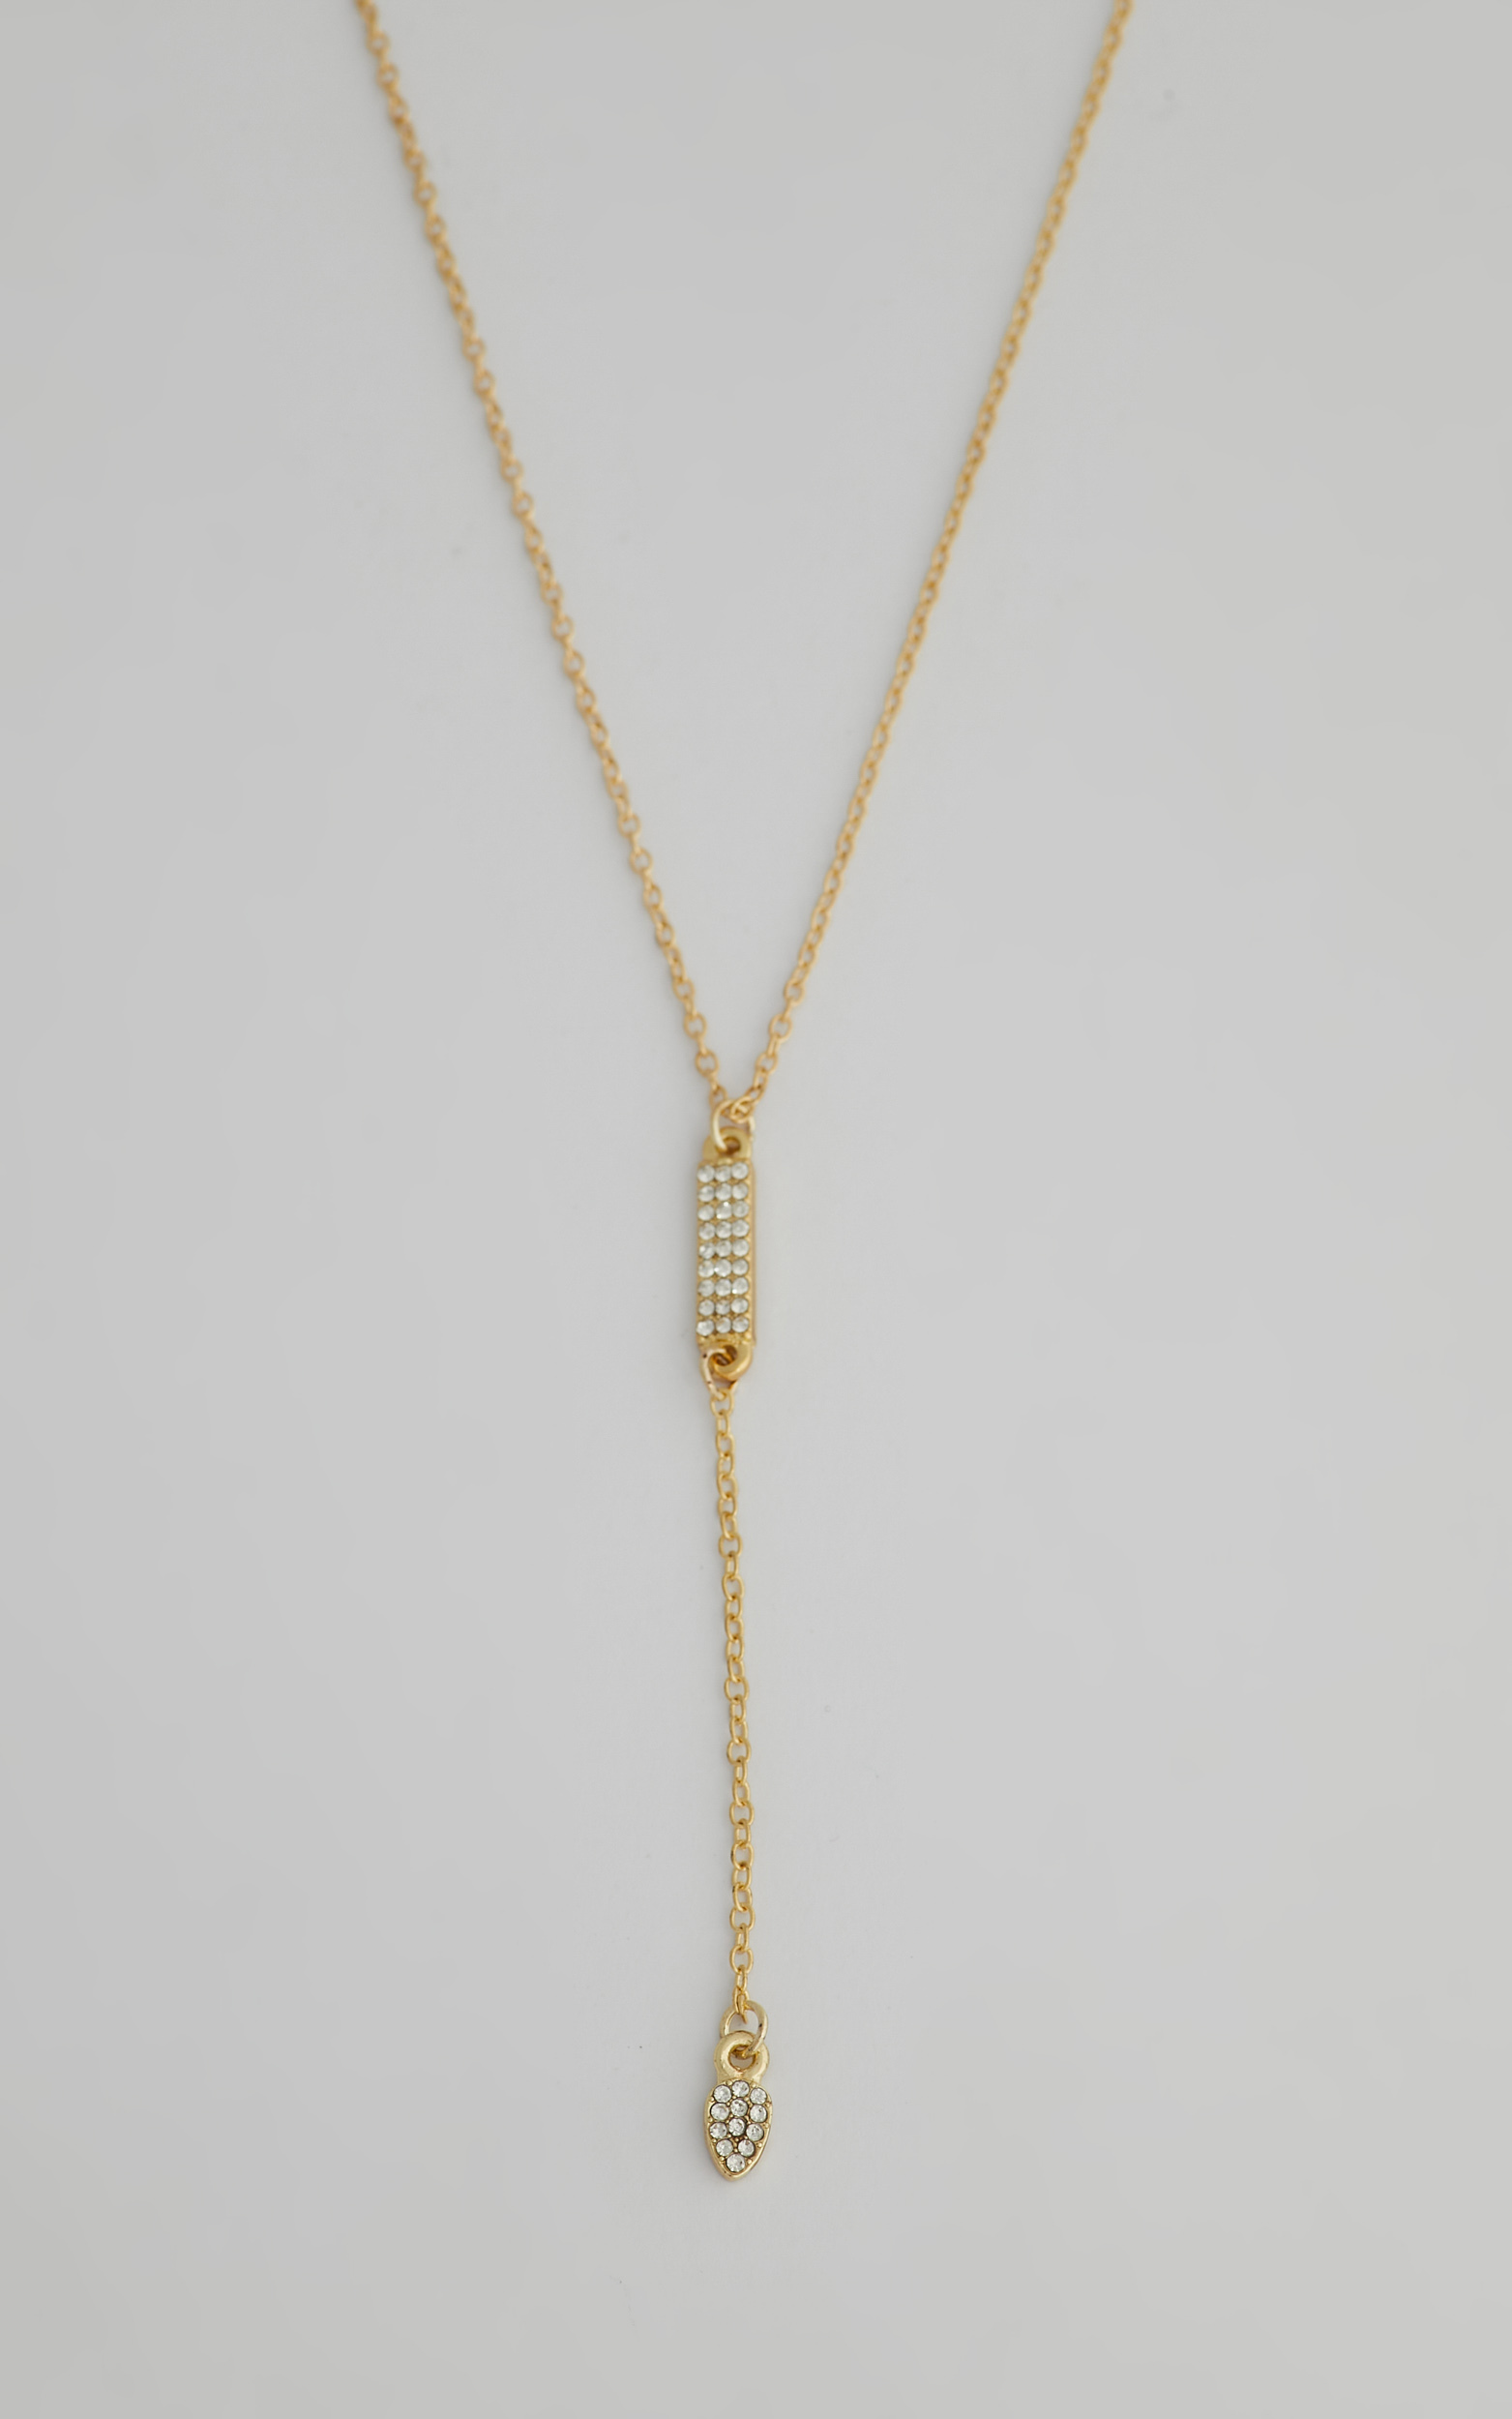 Marina chain necklace in Gold - NoSize, GLD1, hi-res image number null